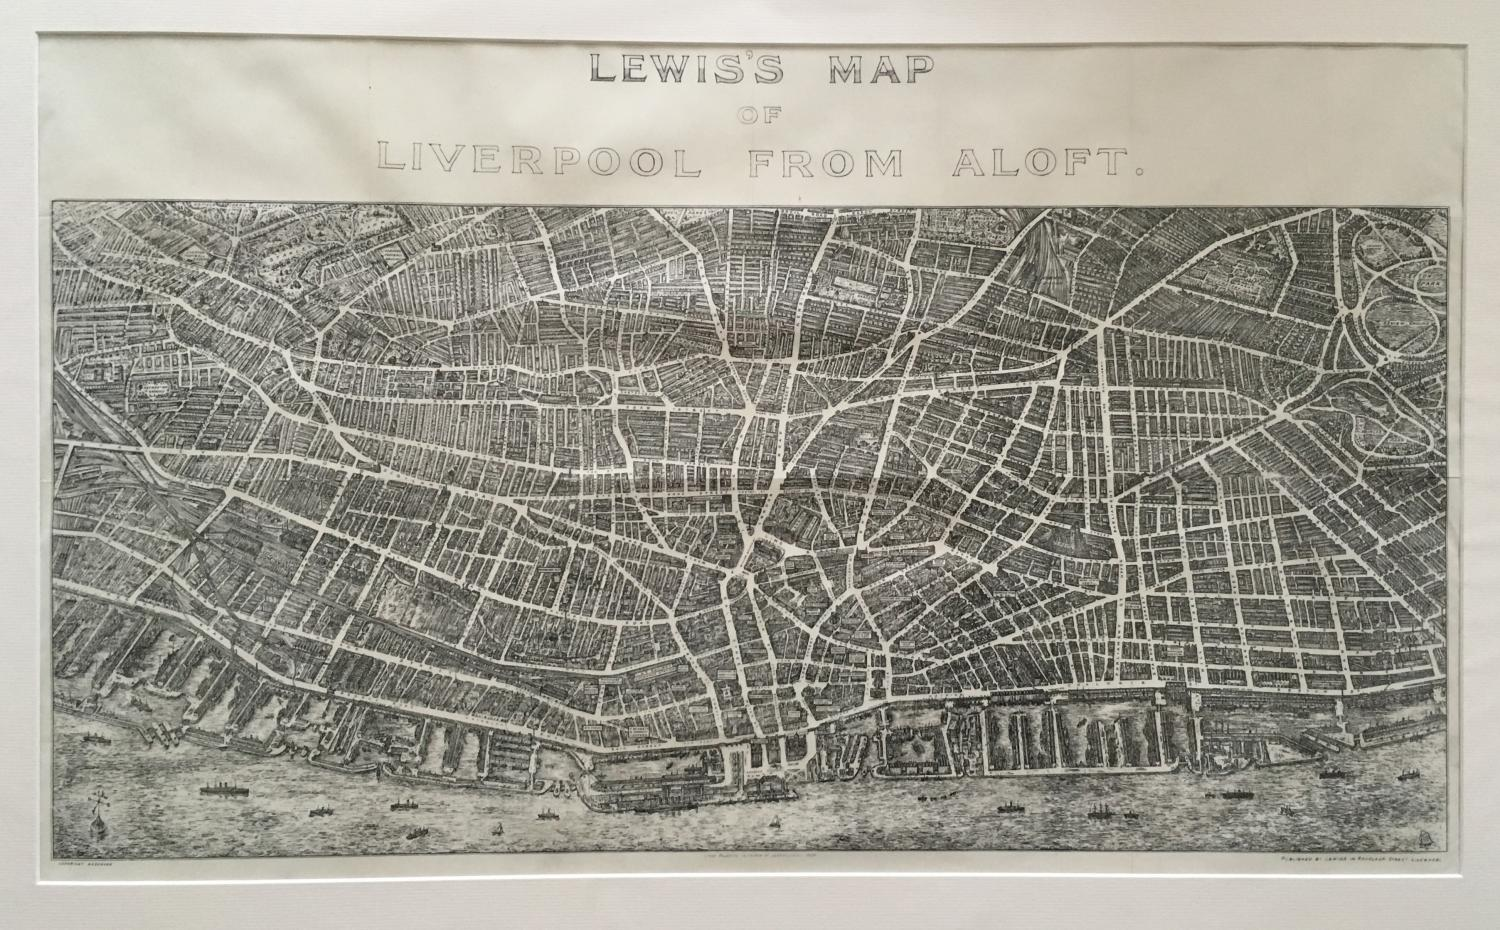 Lewis - Map of Liverpool from Aloft